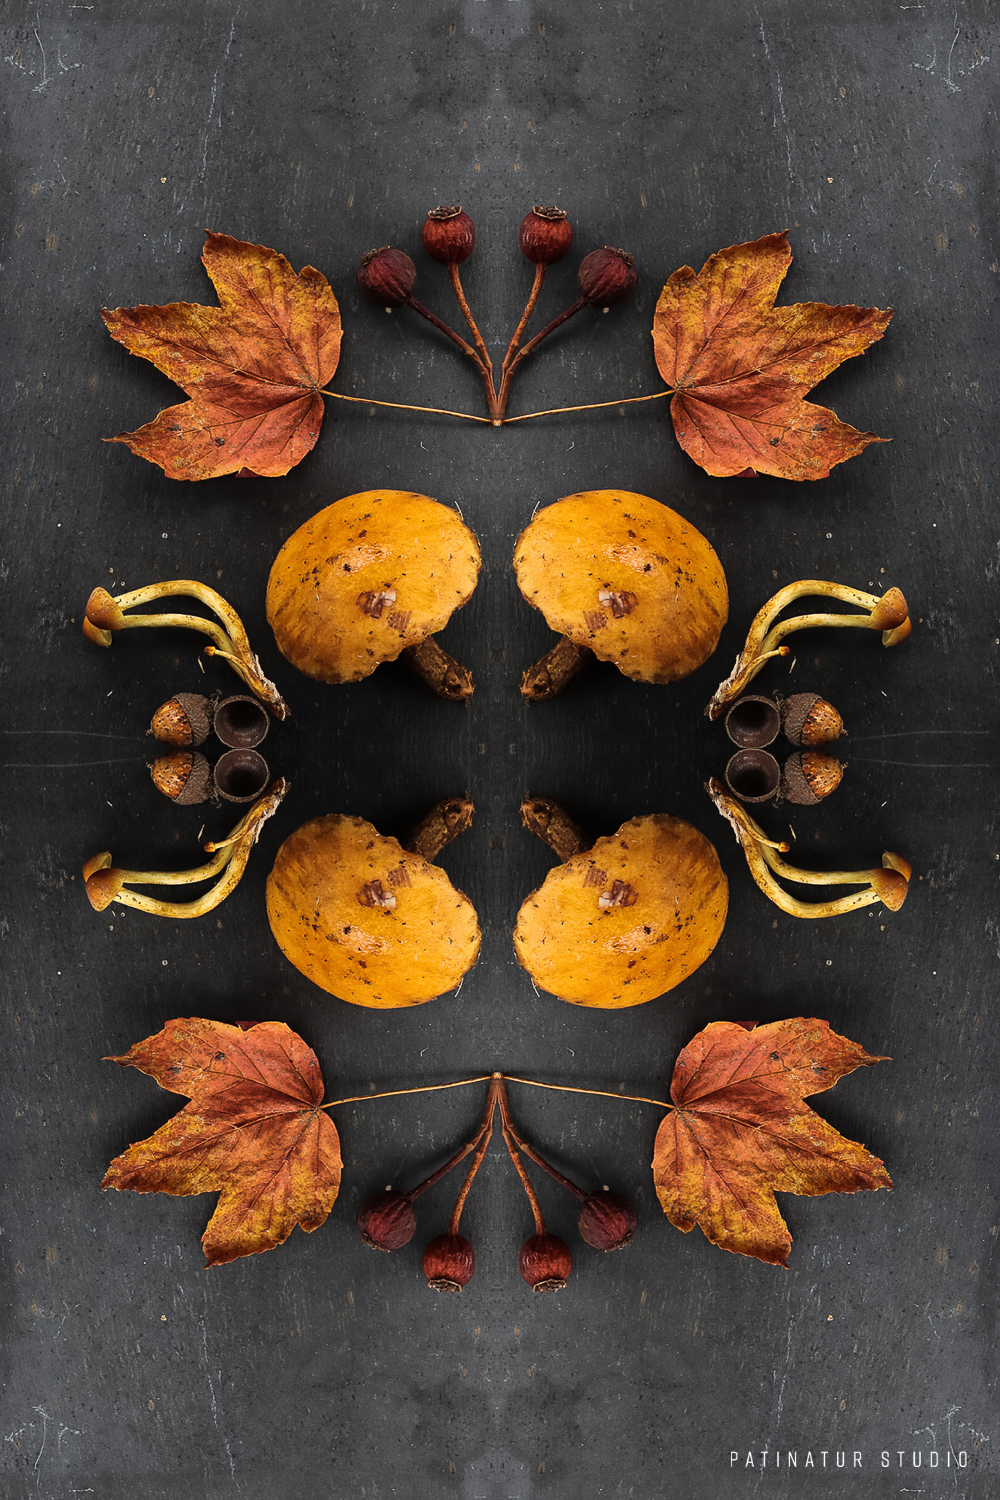 Photo art | Botanical caleidoscope in yellow, orange and red